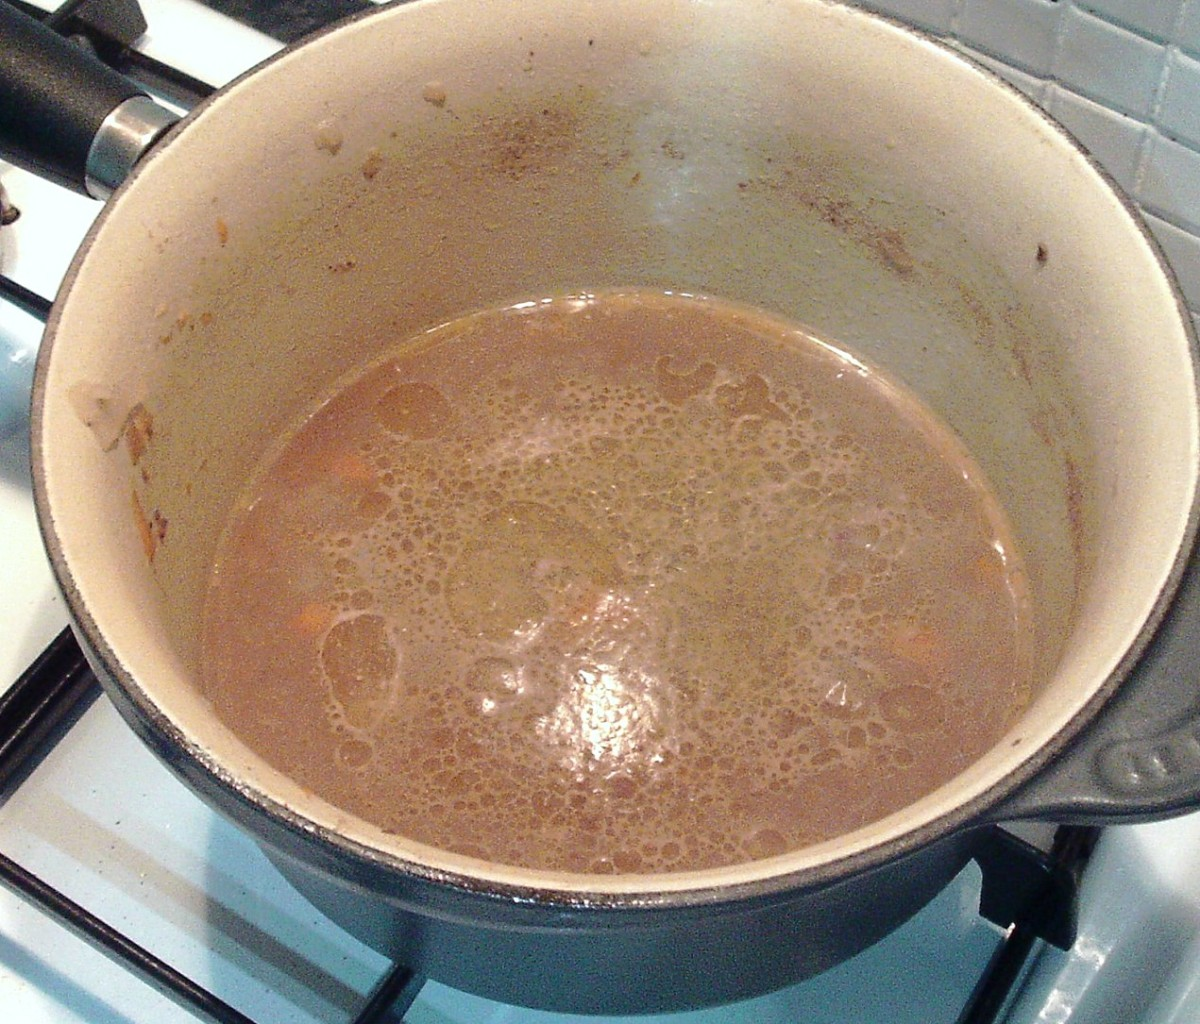 Leftover gravy is put on to reheat